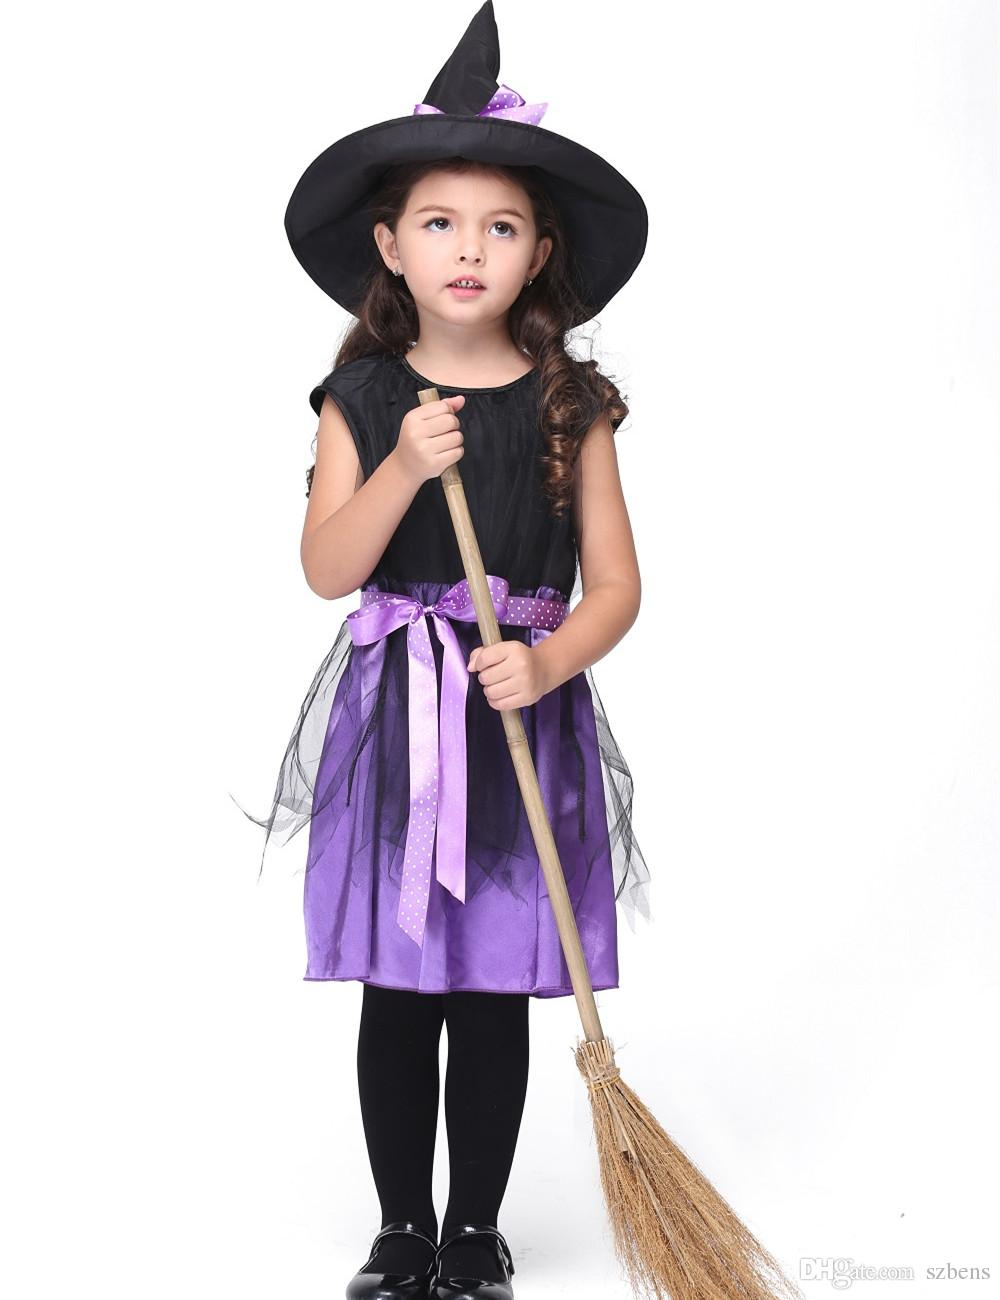 Girls Witch Costume Dress Halloween Costume For Kids Stage u0026 Dance Dress Toddler Short Sleeve Skirt Party Cosplay Purple Kids Group Halloween Costumes Group ...  sc 1 st  DHgate.com & Girls Witch Costume Dress Halloween Costume For Kids Stage u0026 Dance ...